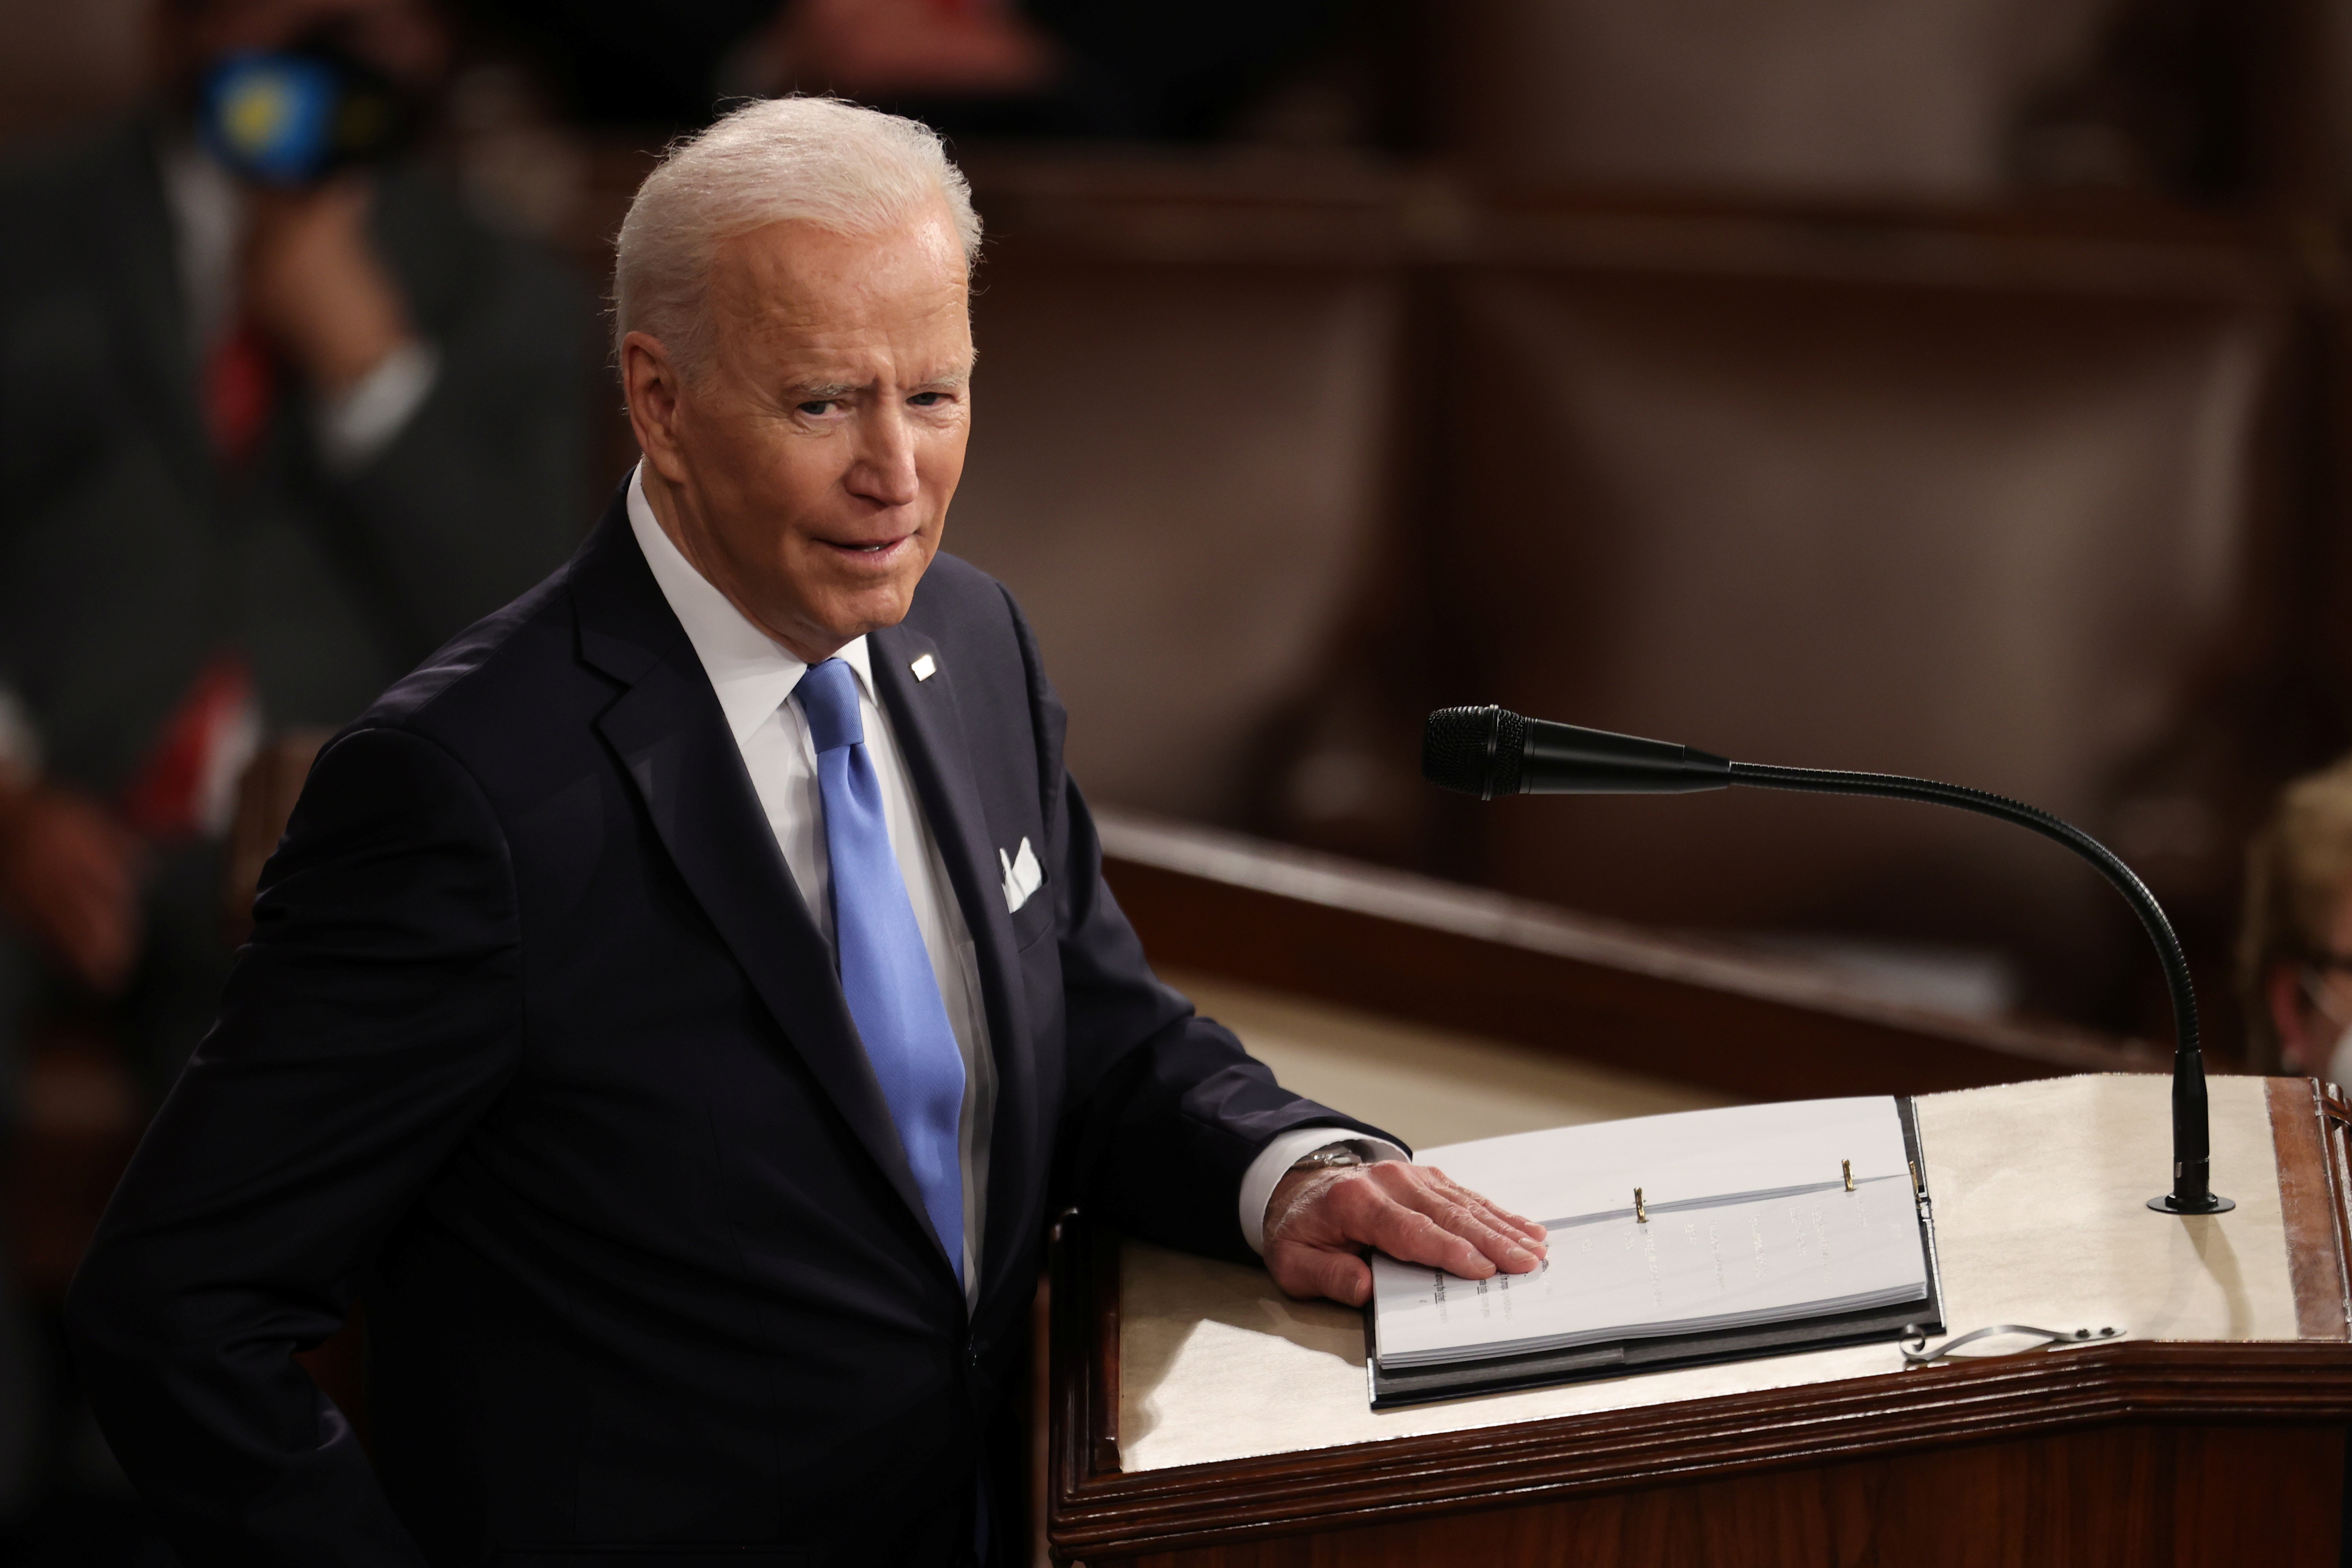 U.S. President Joe Biden delivers his first address to a socially distant joint session of the U.S. Congress inside the House Chamber of the U.S. Capitol in Washington, U.S., April 28, 2021. REUTERS/Jonathan Ernst/Pool